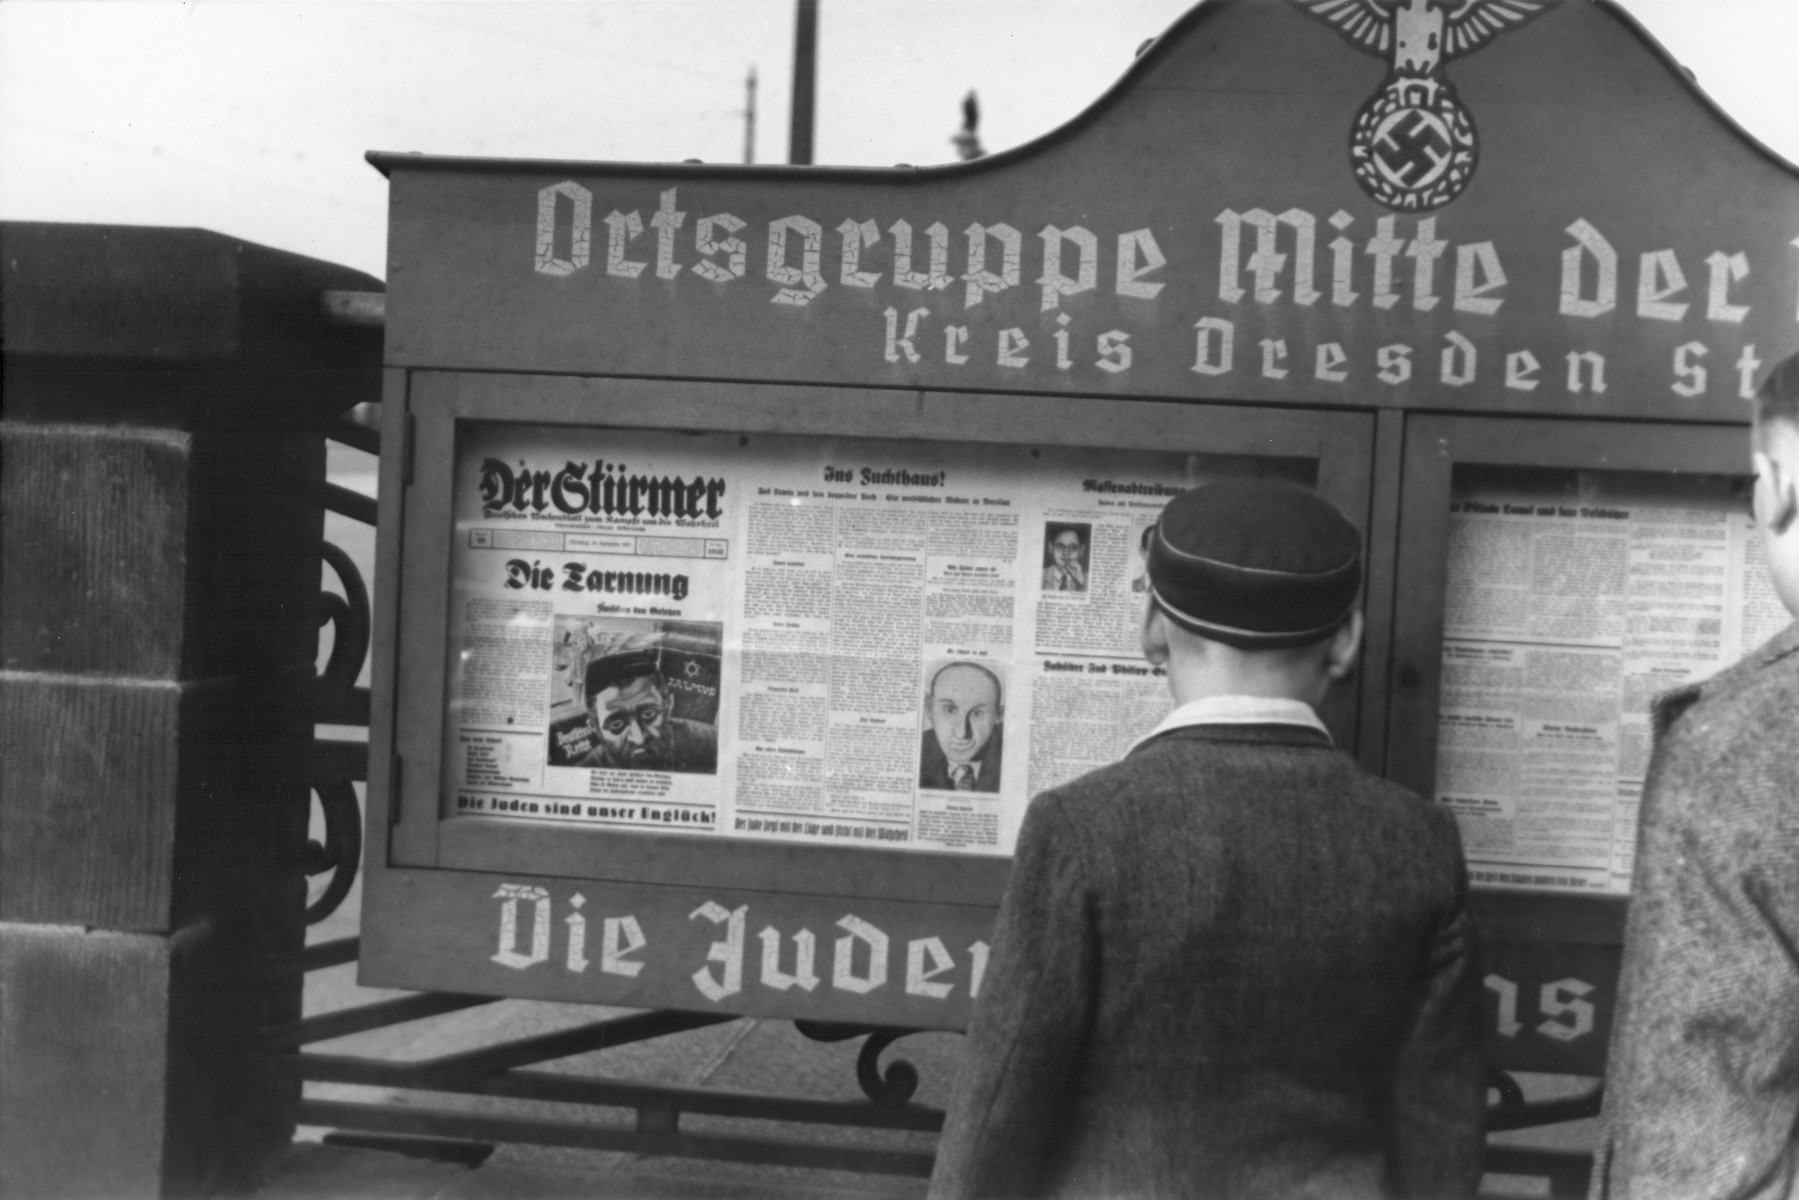 """German boys read an issue of the Stuermer newspaper that is posted in a display box at the entrance to a Nazi party headquarters (Ortsgruppe Mitte der NSDAP) in the Dresden region.  The German slogan at the bottom of the display box reads, """"The Jews are our misfortune."""""""